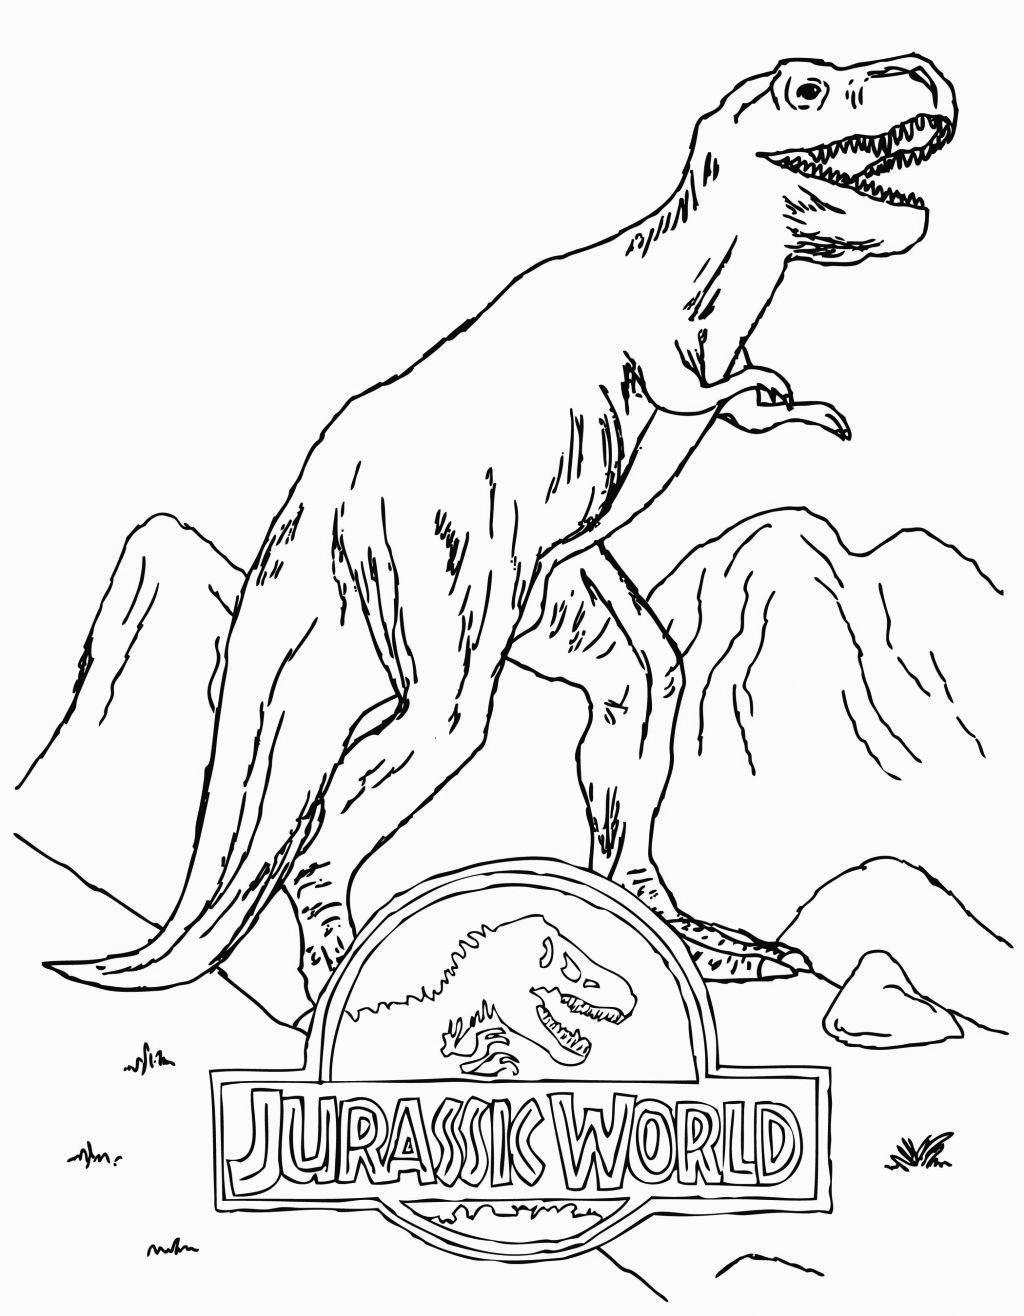 jurassic world printable coloring pages jurassic world coloring pages adominus rex free pages jurassic world coloring printable